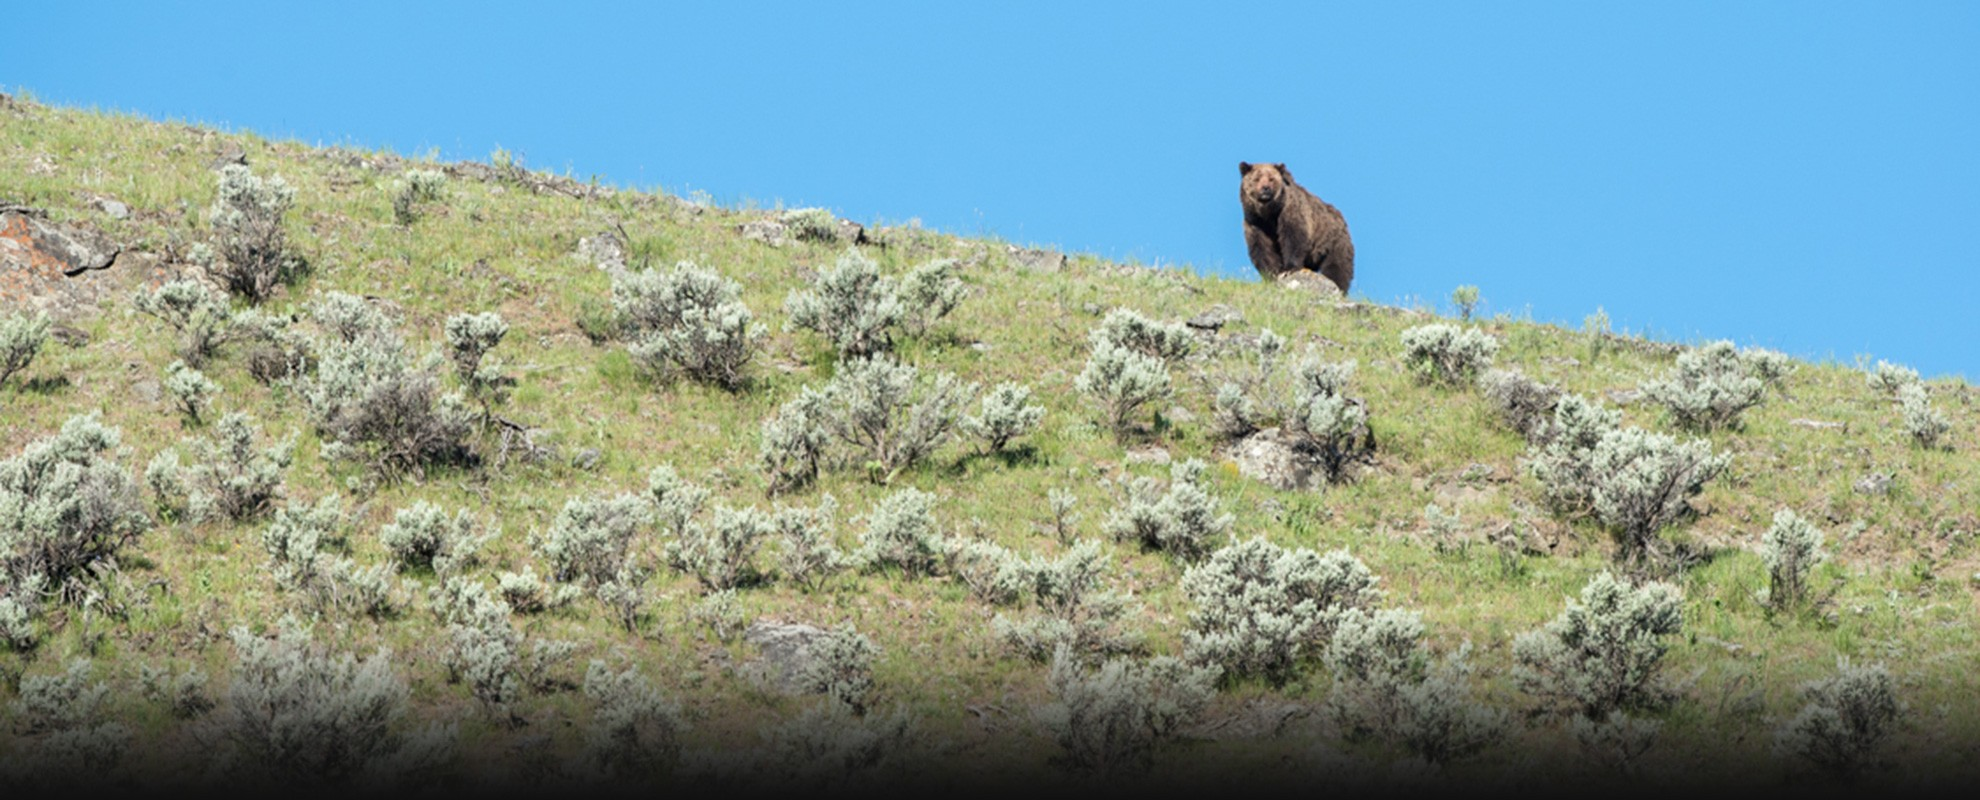 Grizzly bear in Yellowstone National Park.